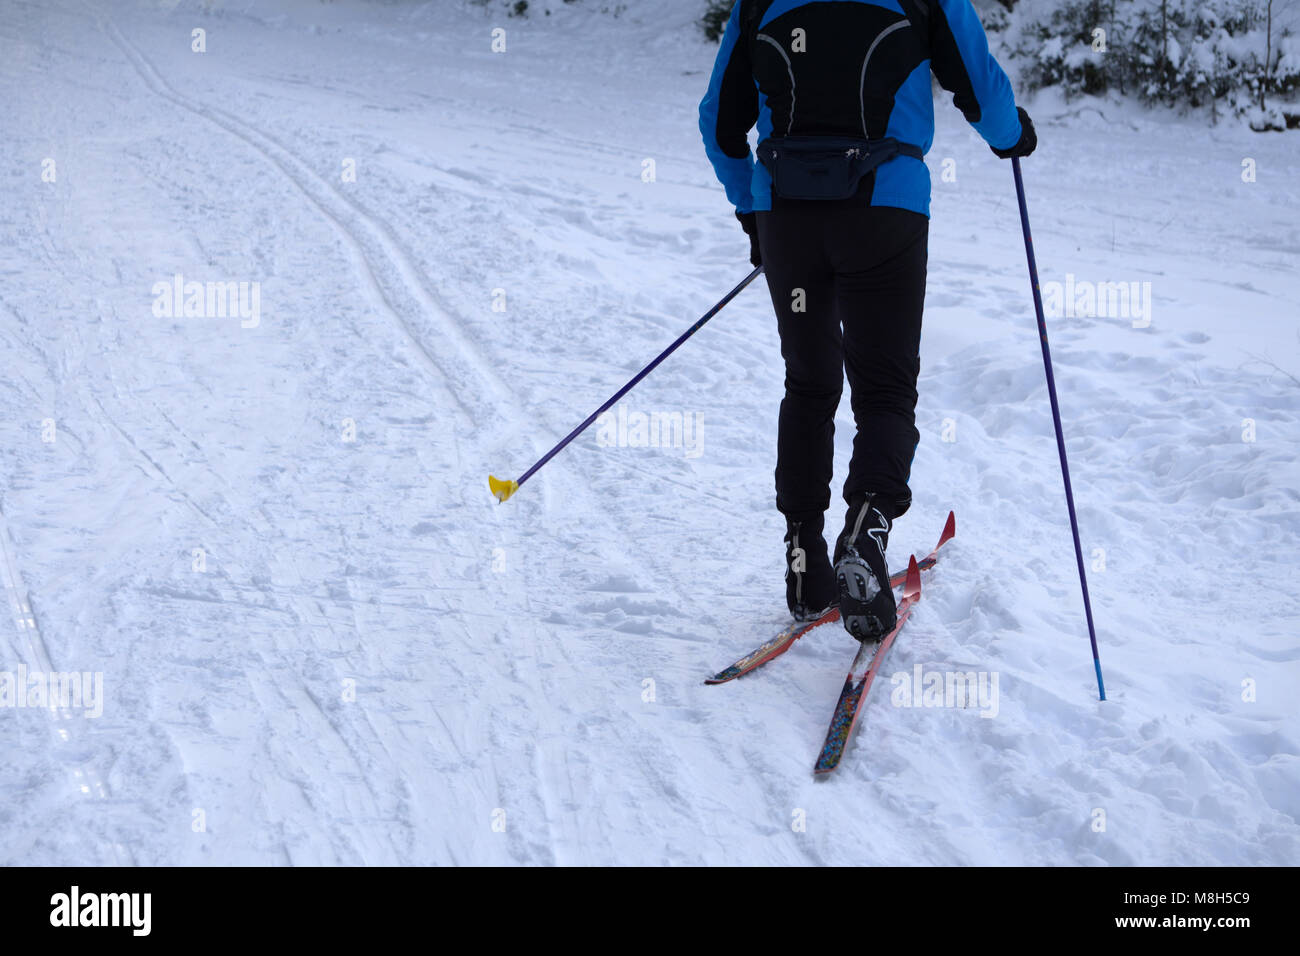 Cross-country skiing skating technique practiced by man . - Stock Image